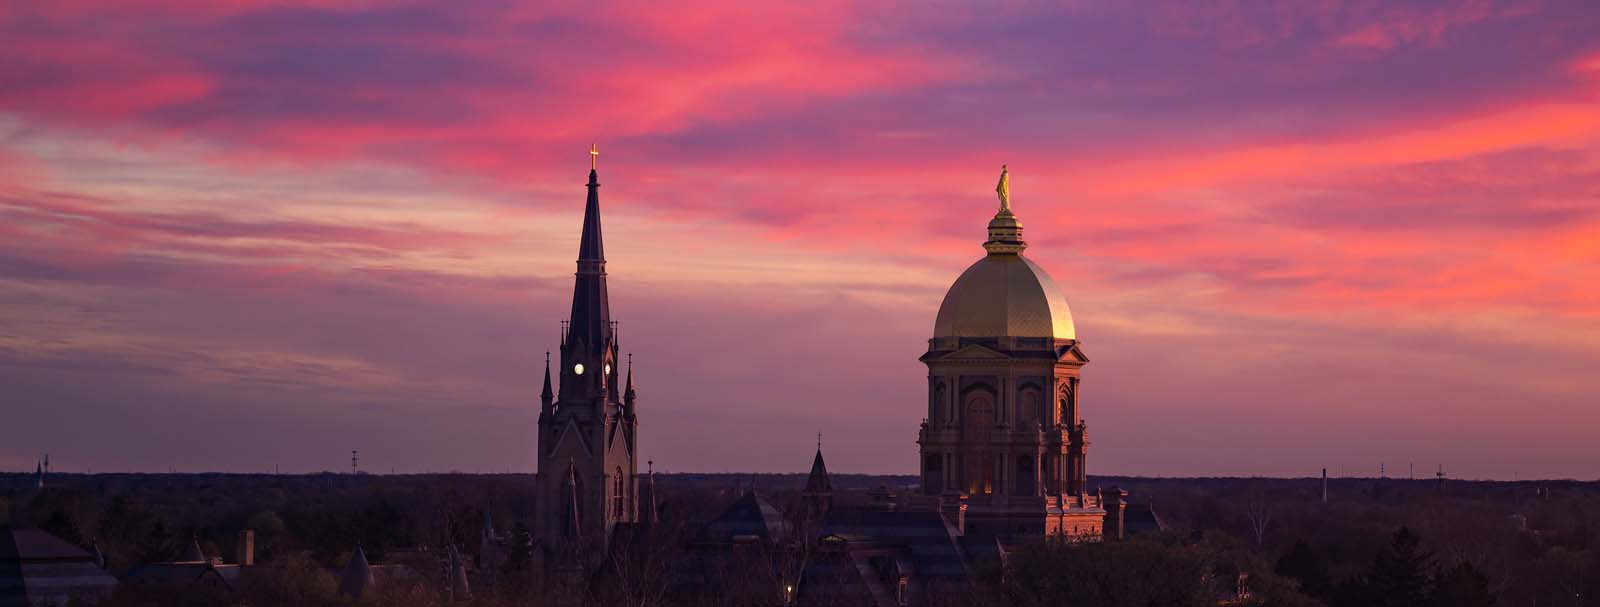 Dome and Basilica at sunset.